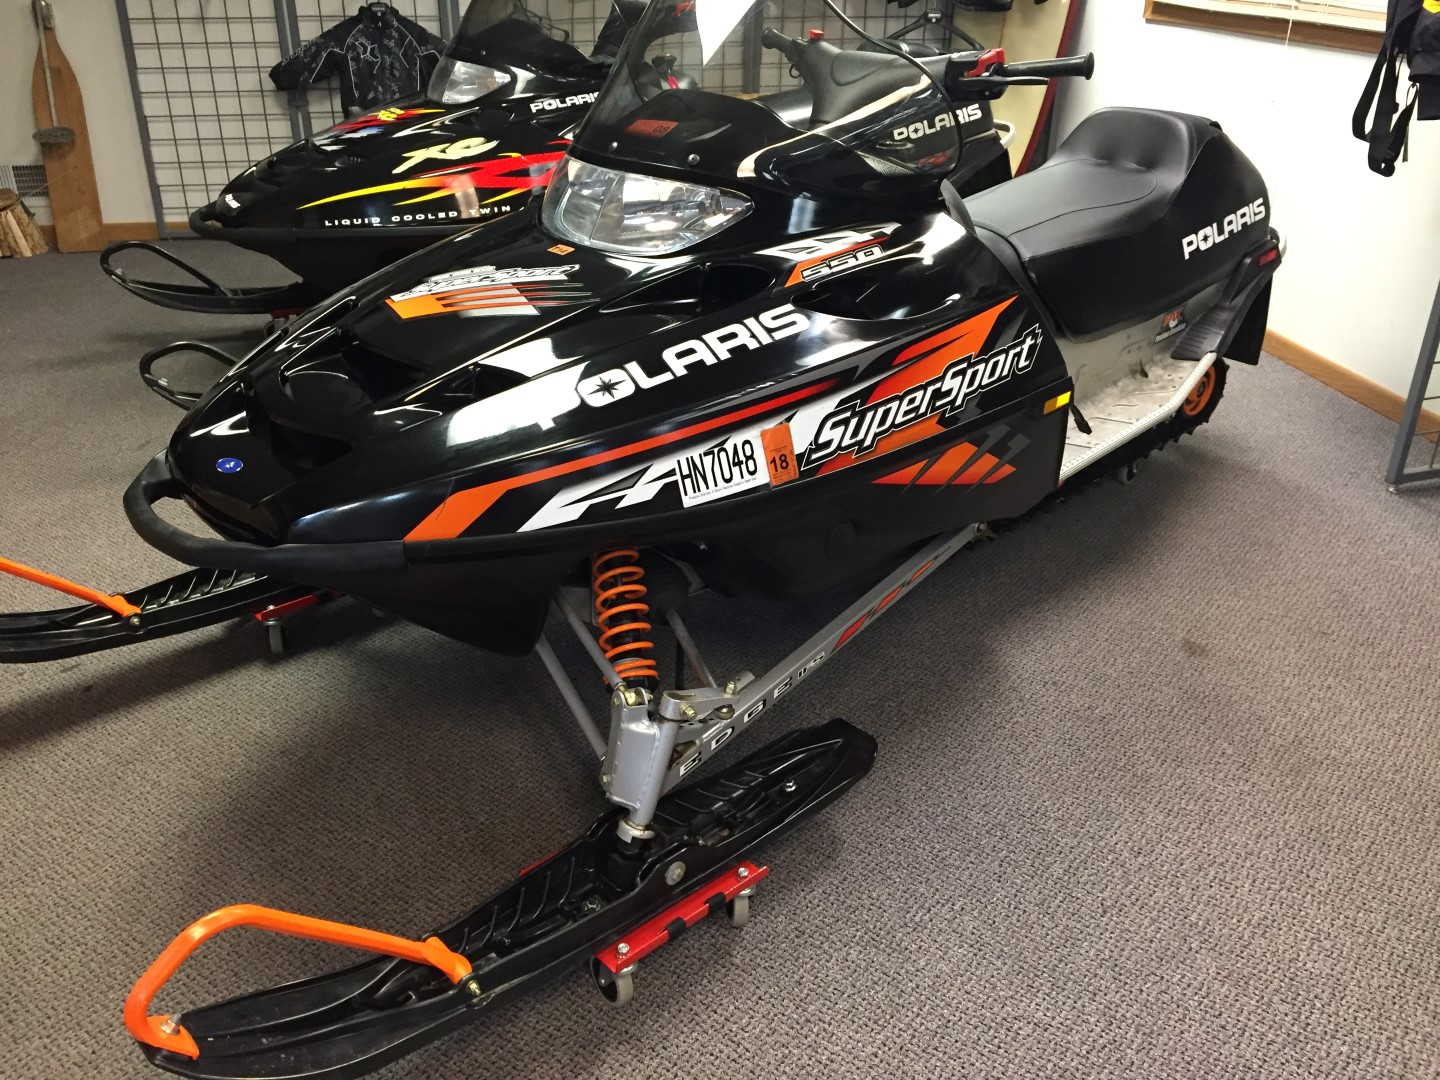 2005 polaris supersport 550 Deluxe track for sale seaberg motorsports crosslake MN sale skis st cloud mn